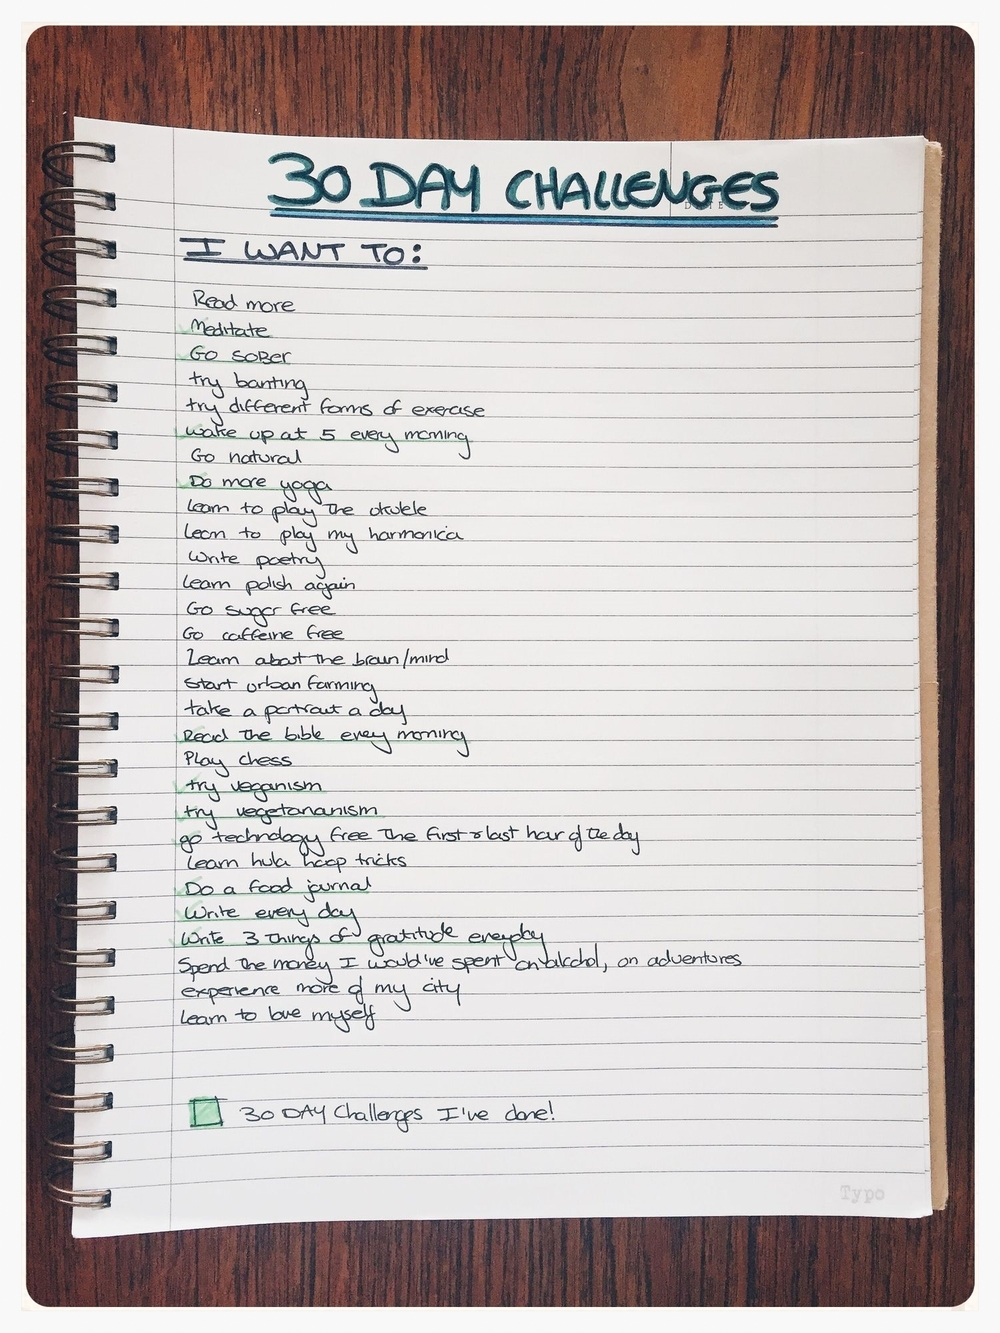 The 30 Day Challenges I am trying out